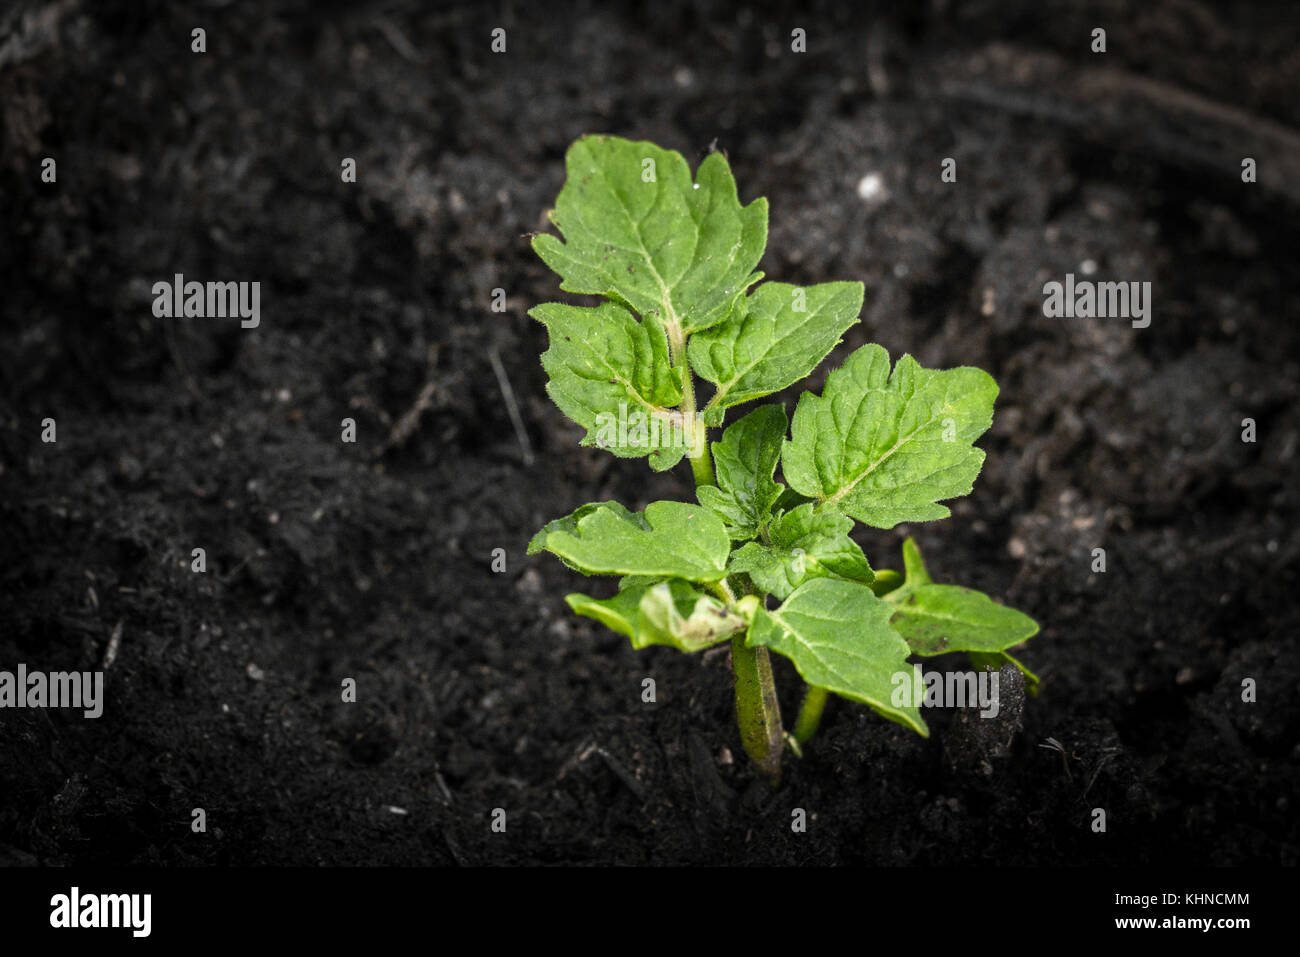 Green plant growing in dark soil in the spring with fresh green leaves - Stock Image